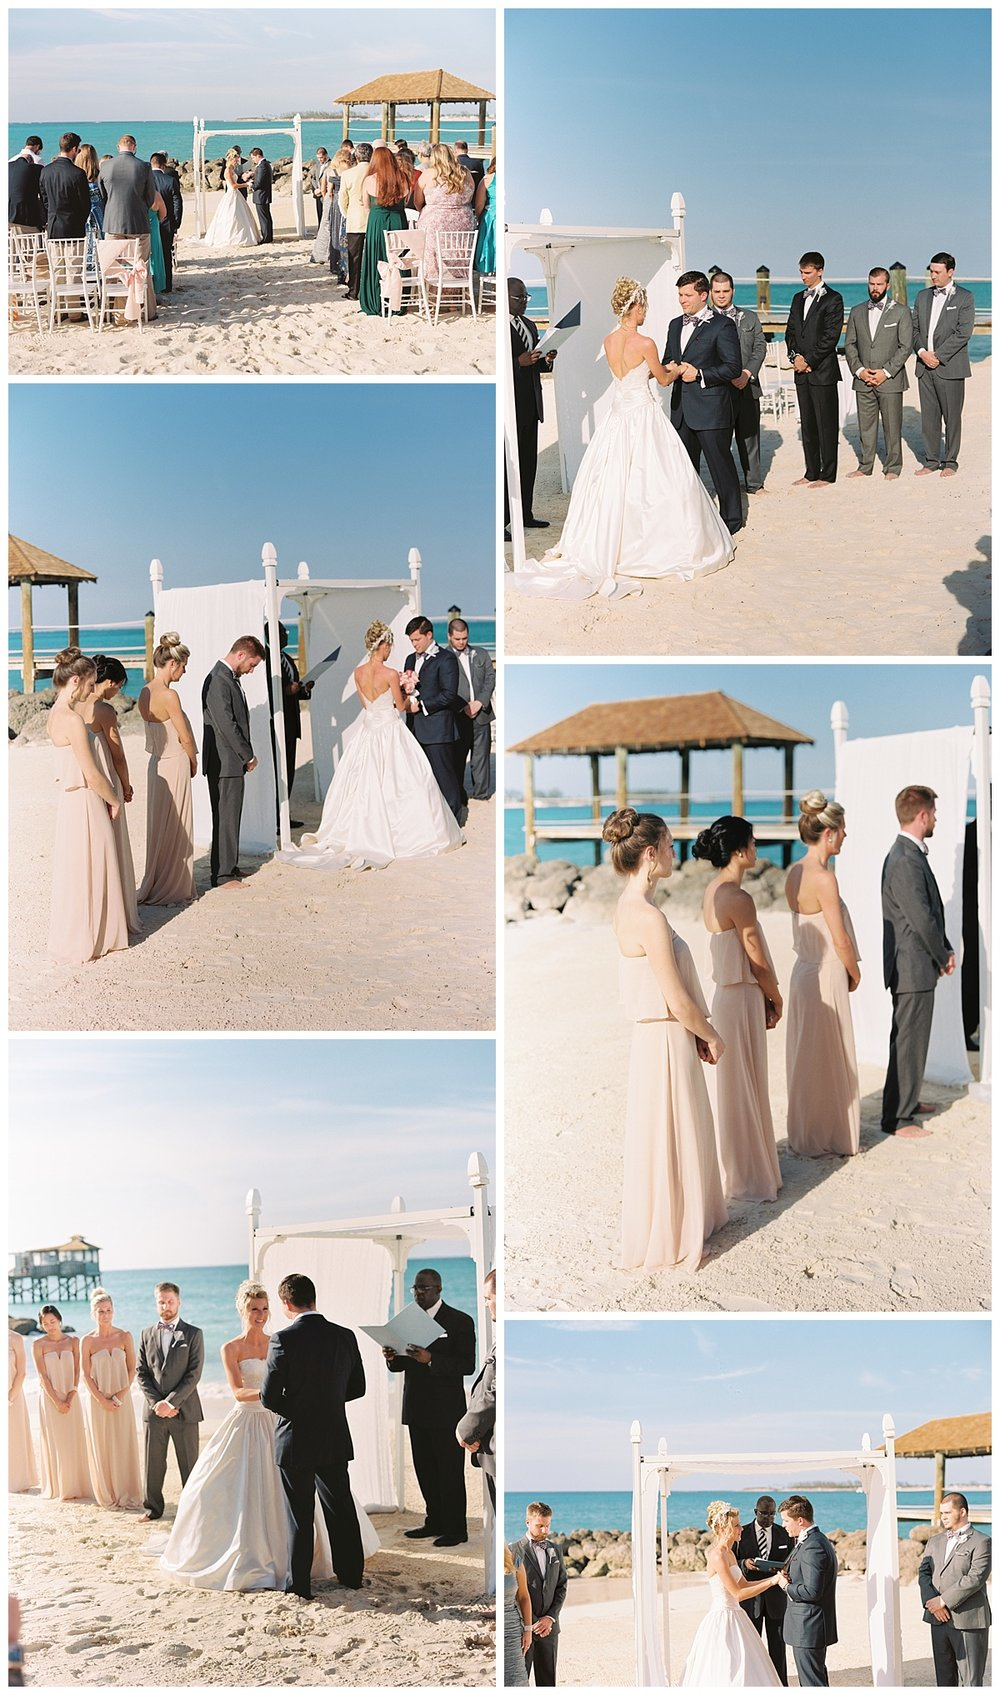 sandals-bahamas-wedding-ar-photography-5.jpg